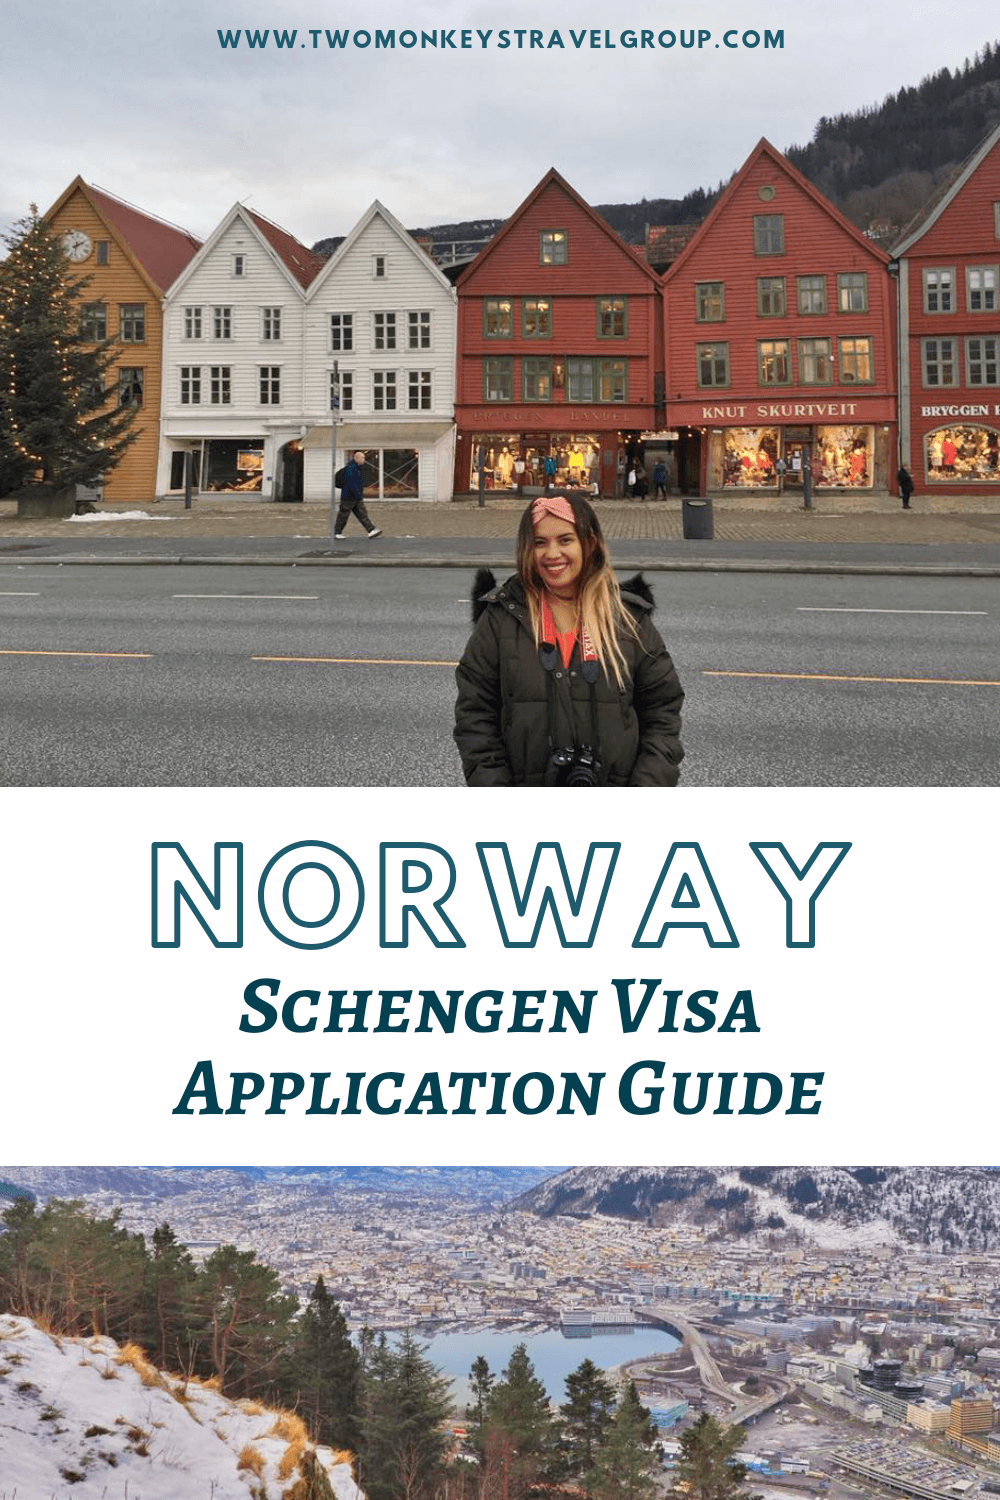 How to Apply For A Norway Schengen Visa with Your Philippines Passport